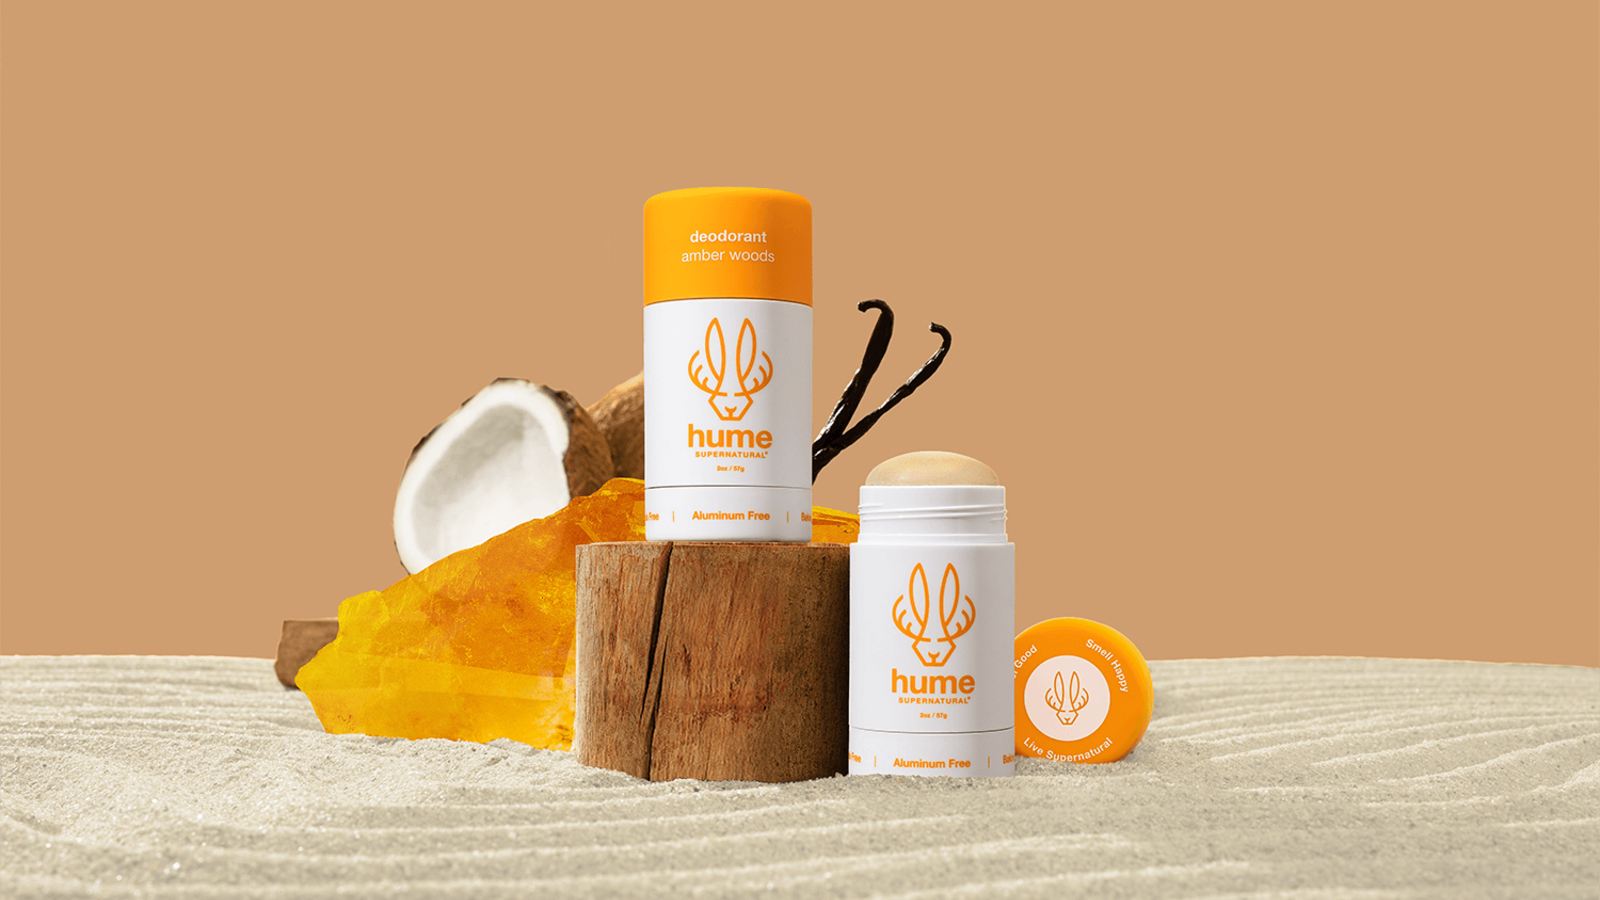 orange and white bottle of Hume deodorant on a piece of wood in the sand